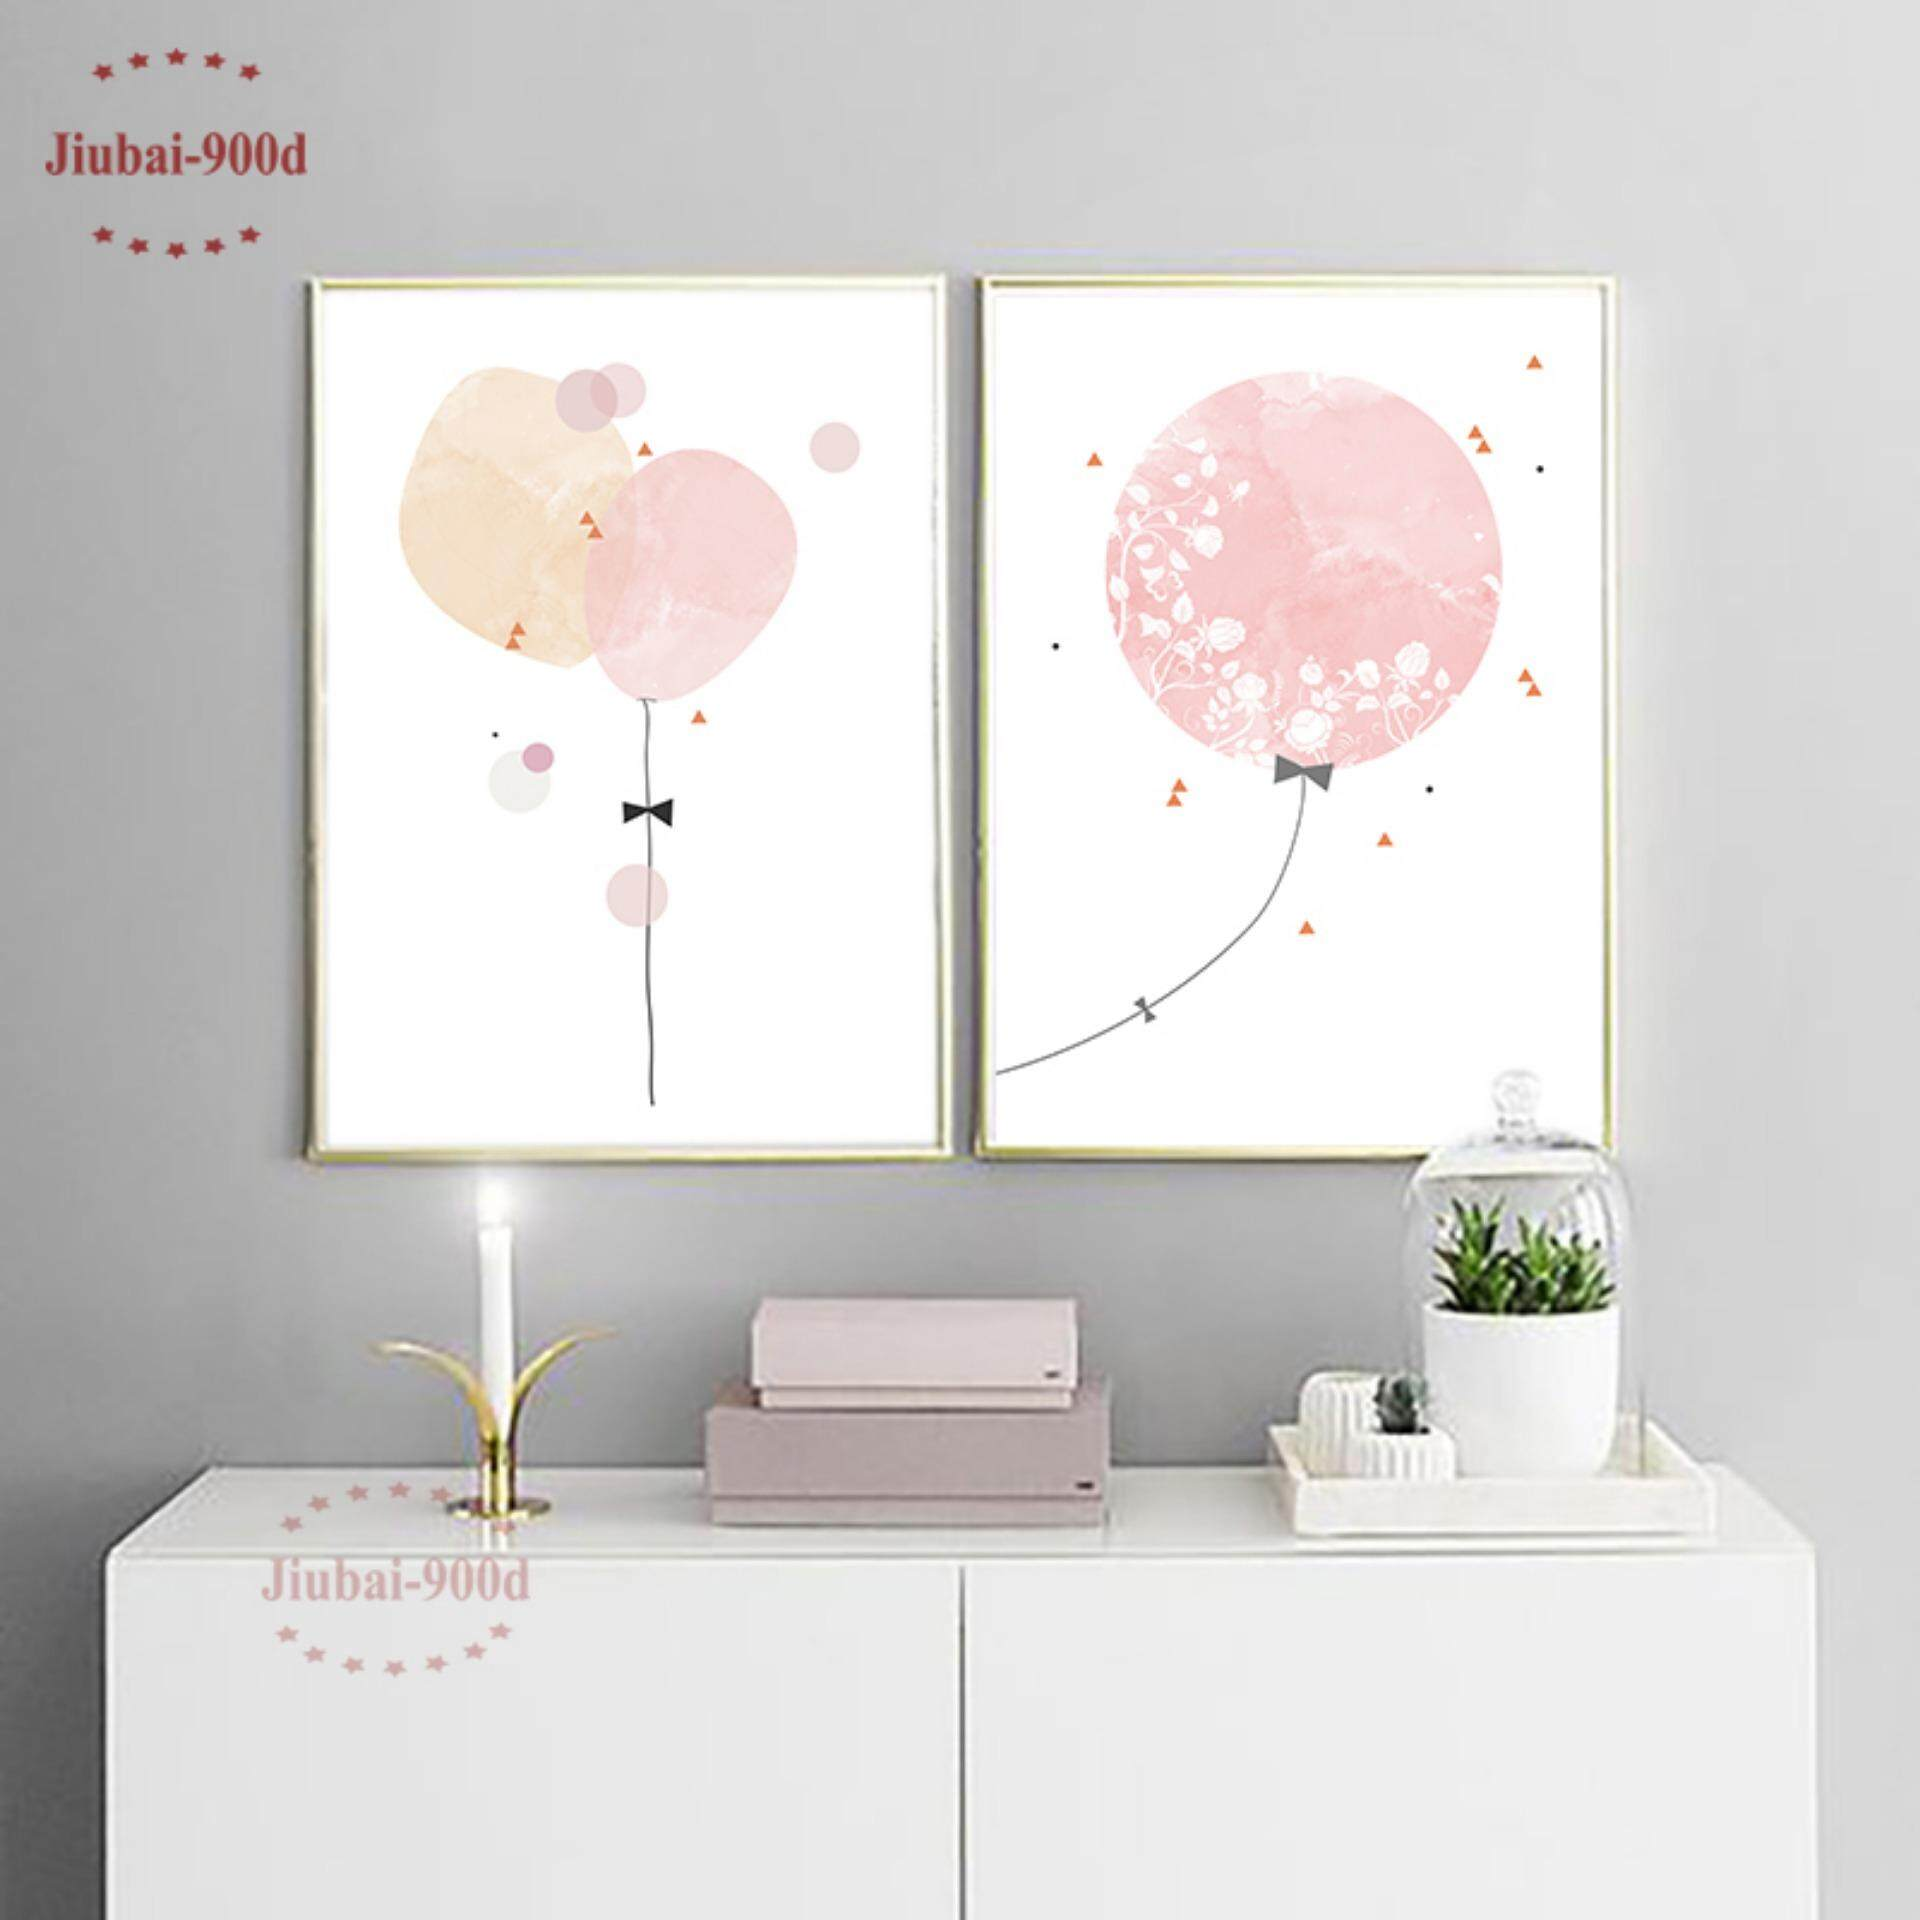 2 Pieces 30X42cm Unframed Watercolor Balloon Art Print Painting Poster - intl